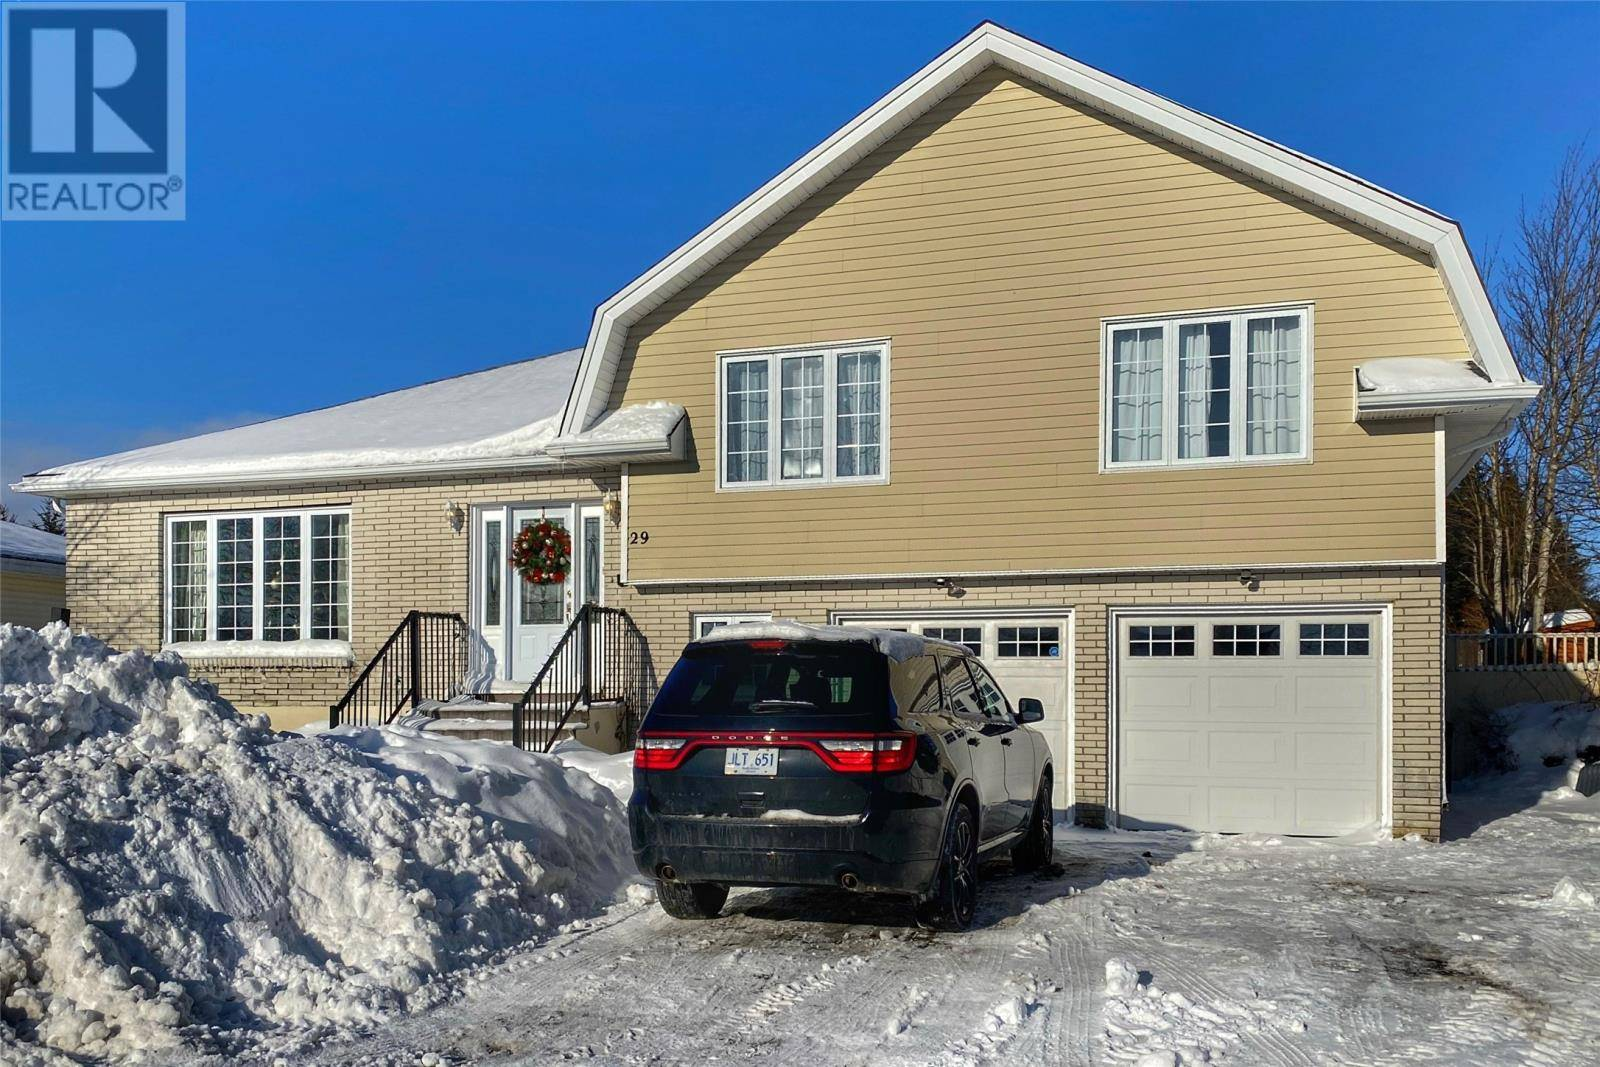 House for sale at 29 Fagan Dr St. John's Newfoundland - MLS: 1201164